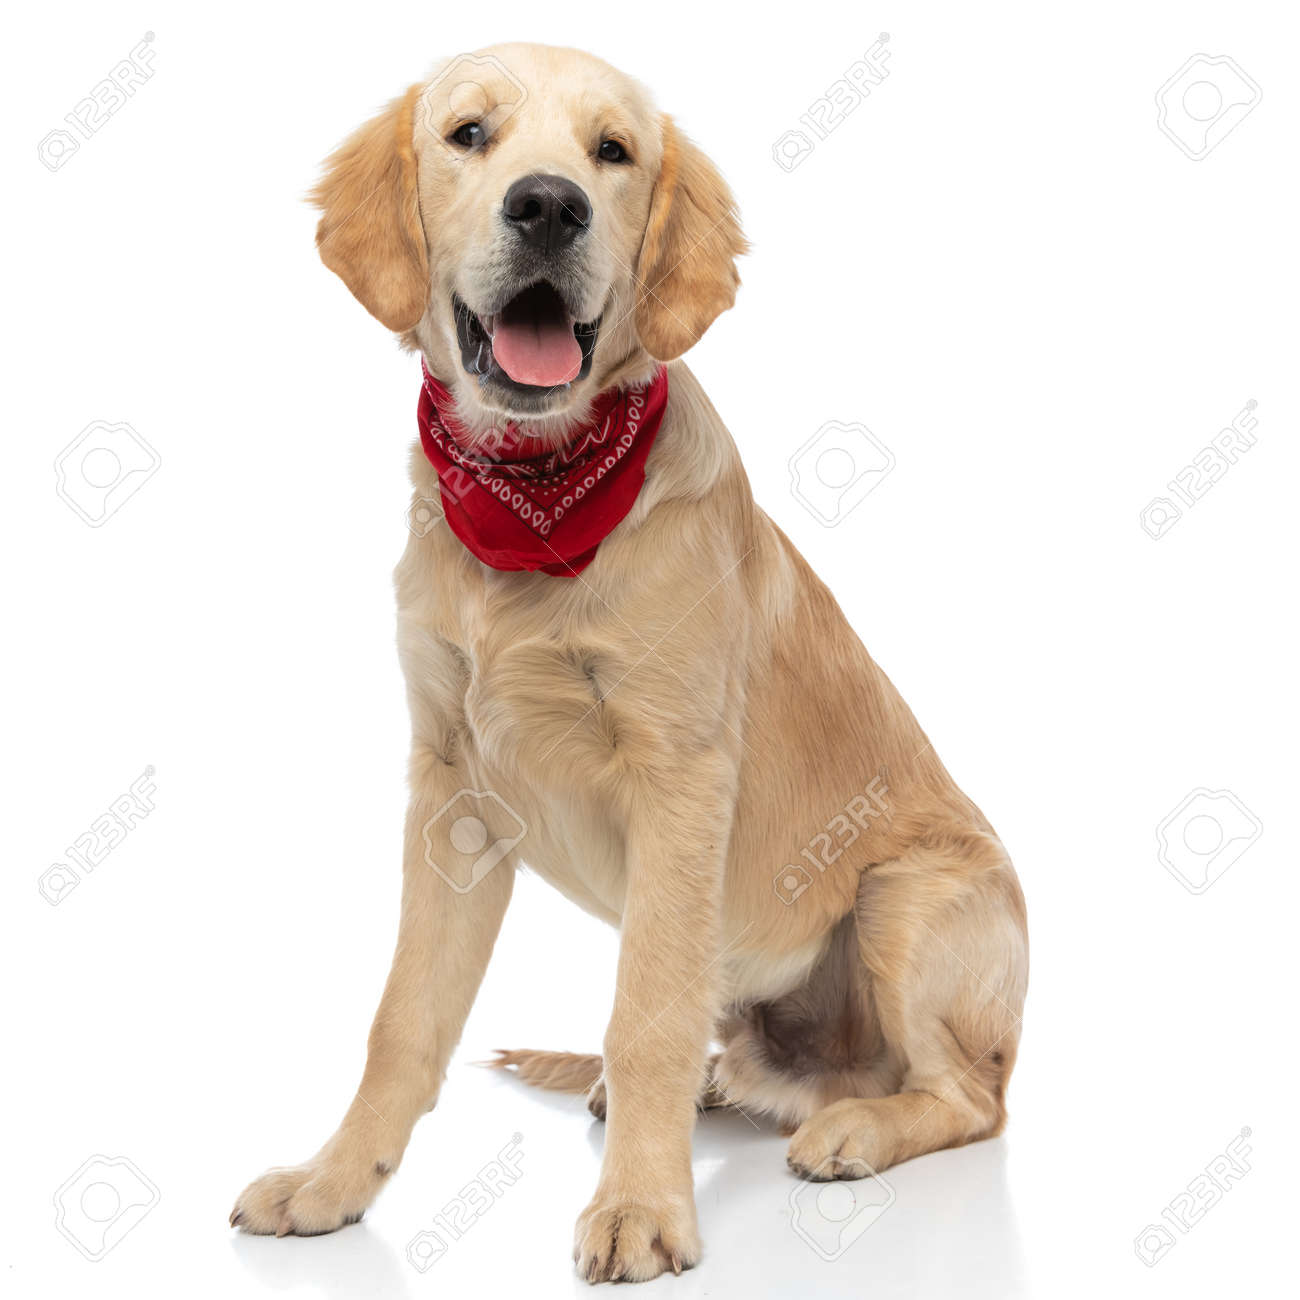 happy golden retriever dog sitting and sticking his tongue out at the camera, wearing a red bandana - 159666831